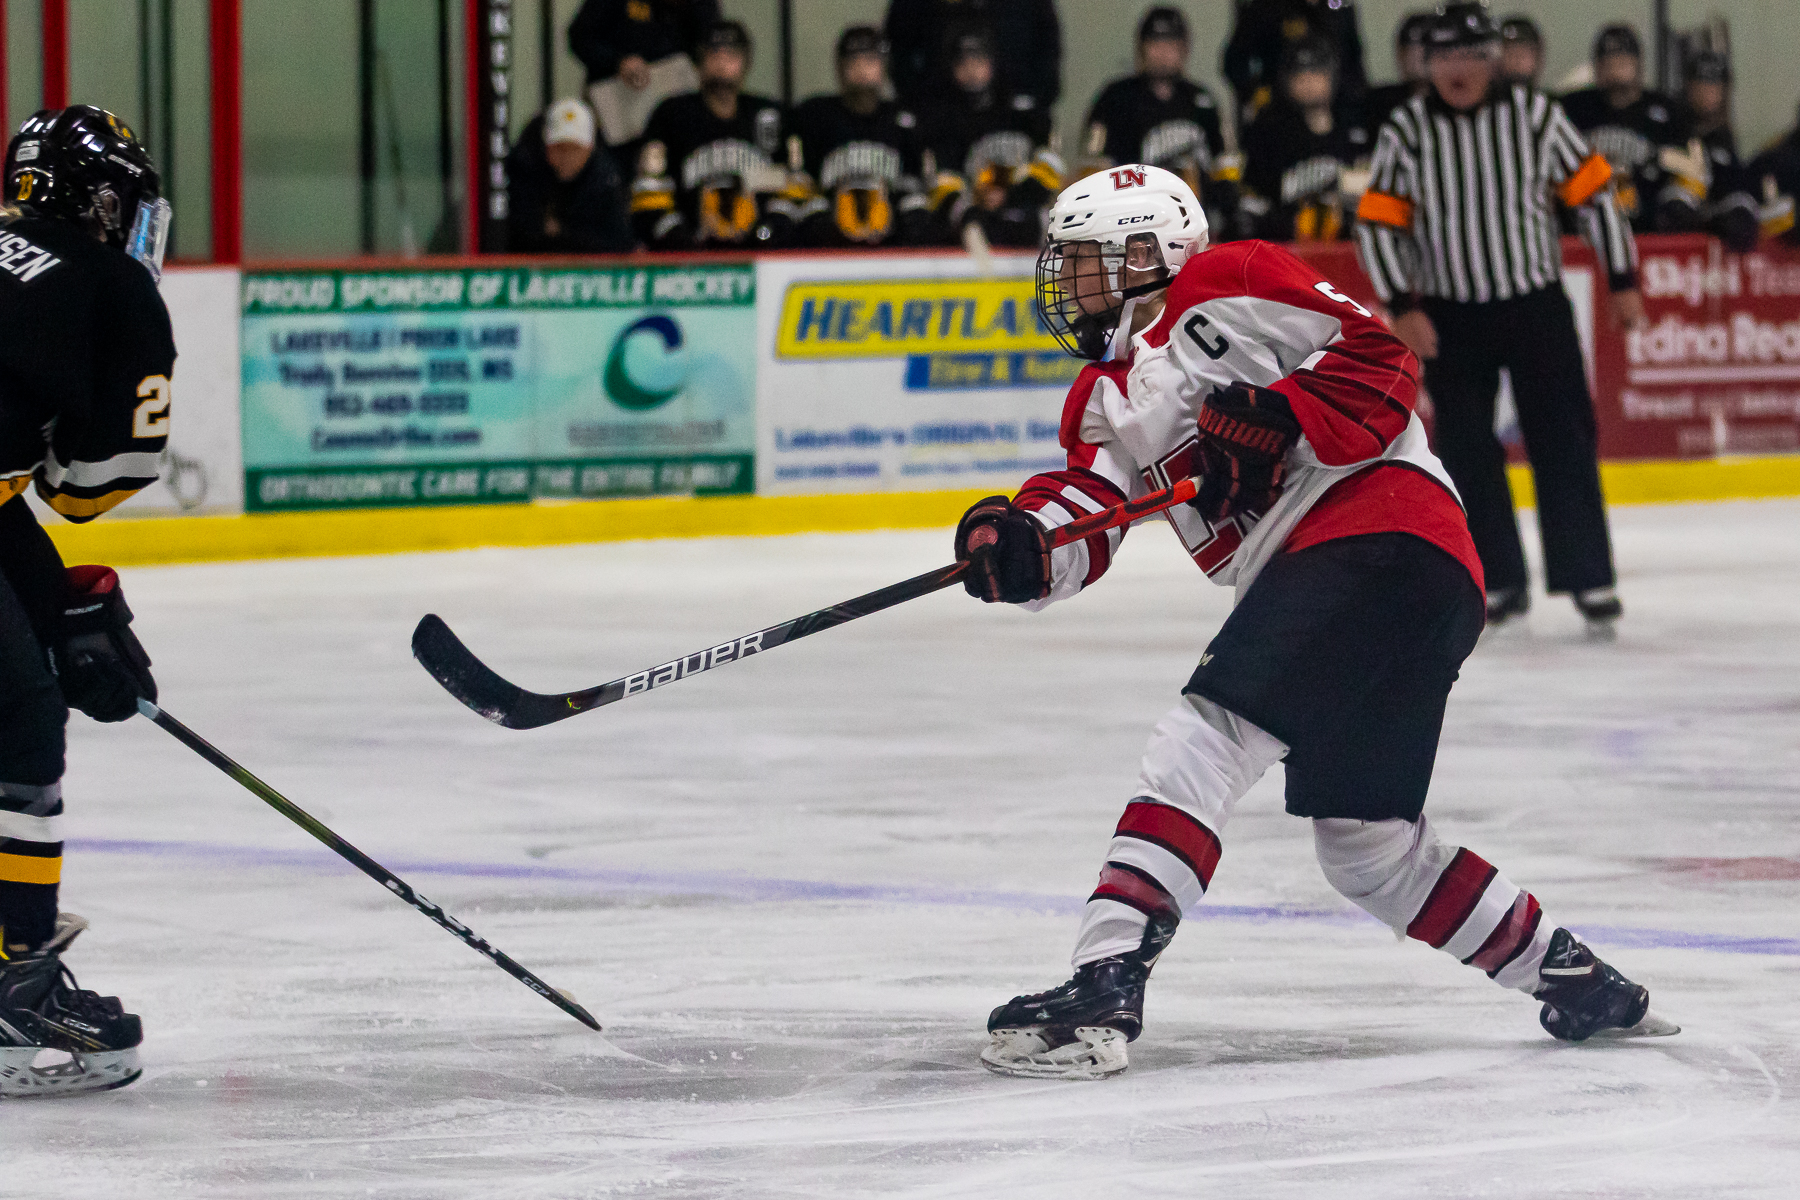 Brooke Power scored Lakeville North's only goal Friday in the Panthers' 4-1 loss to Warroad on Friday night. Photo by Gary Mukai, SportsEngine